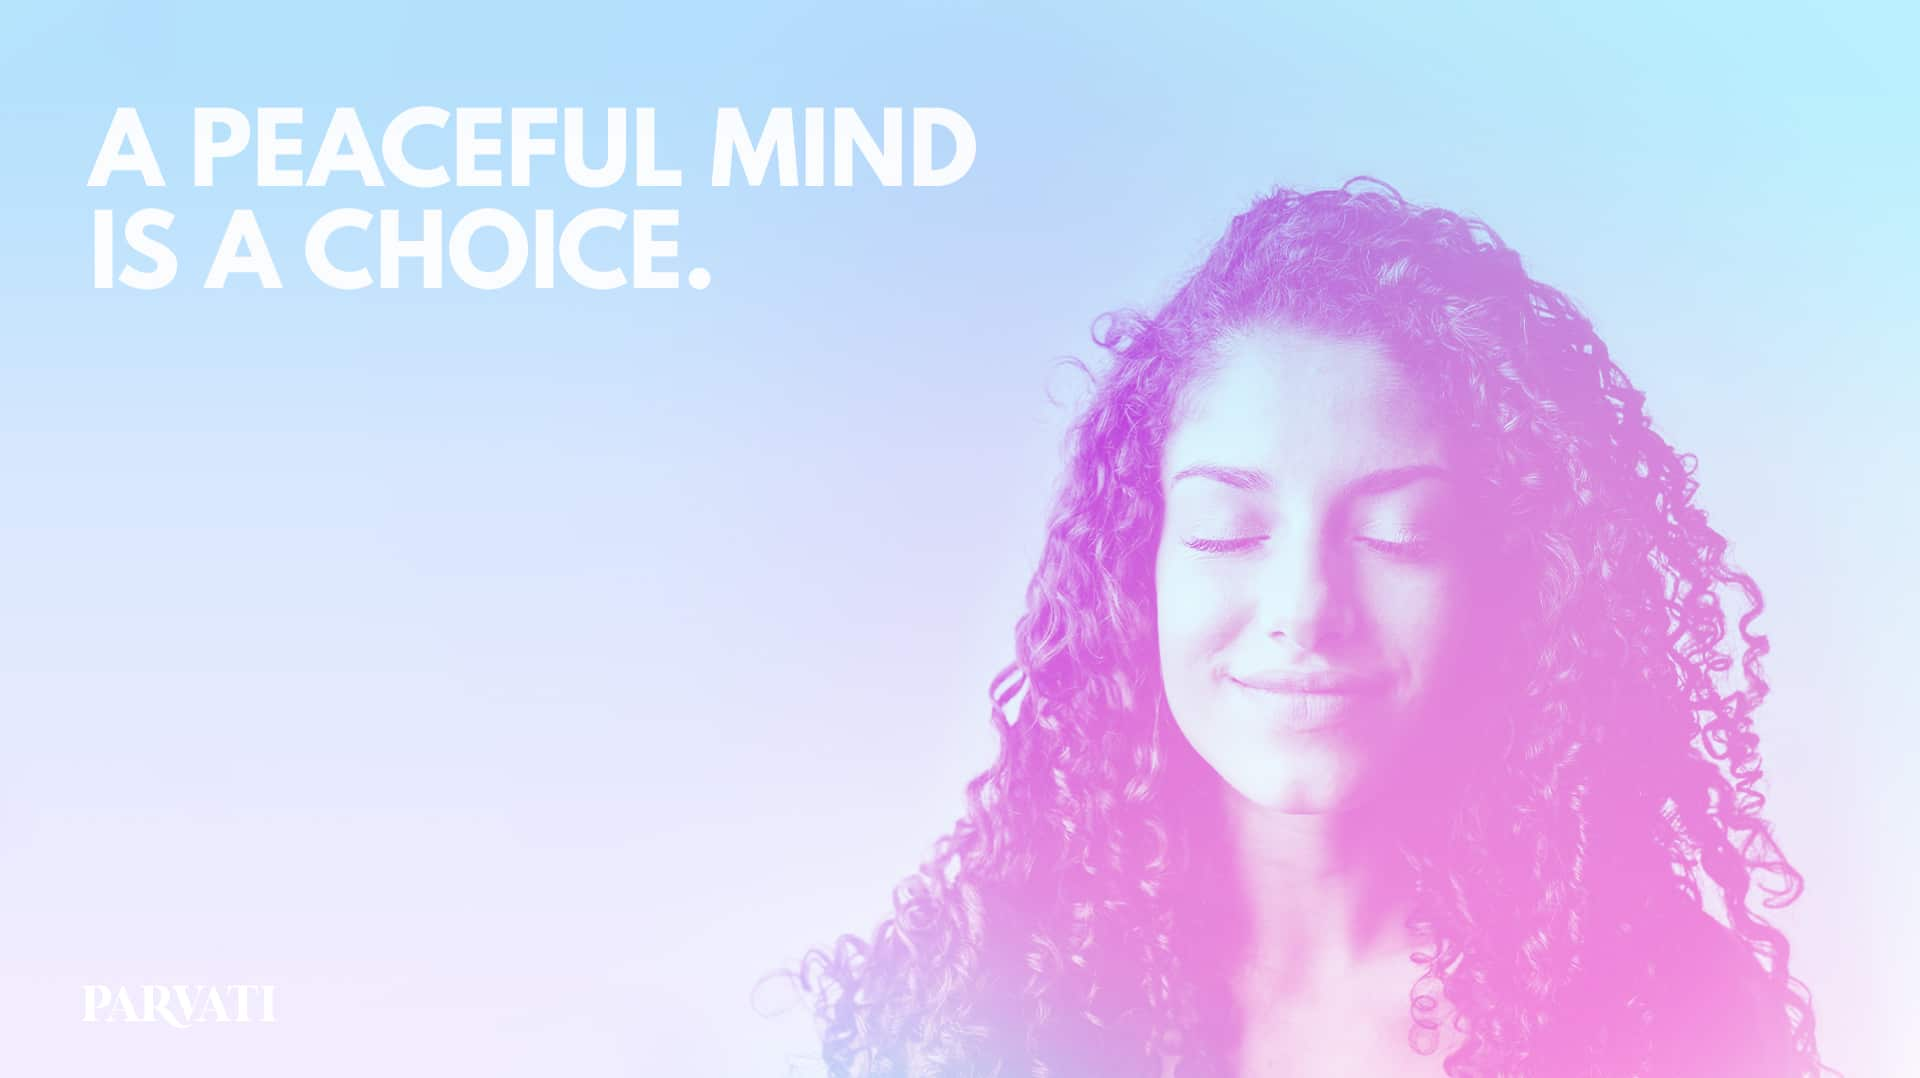 Finding Your Inner Peace Sanctuary - A Peaceful Mind Is a Choice - Parvati